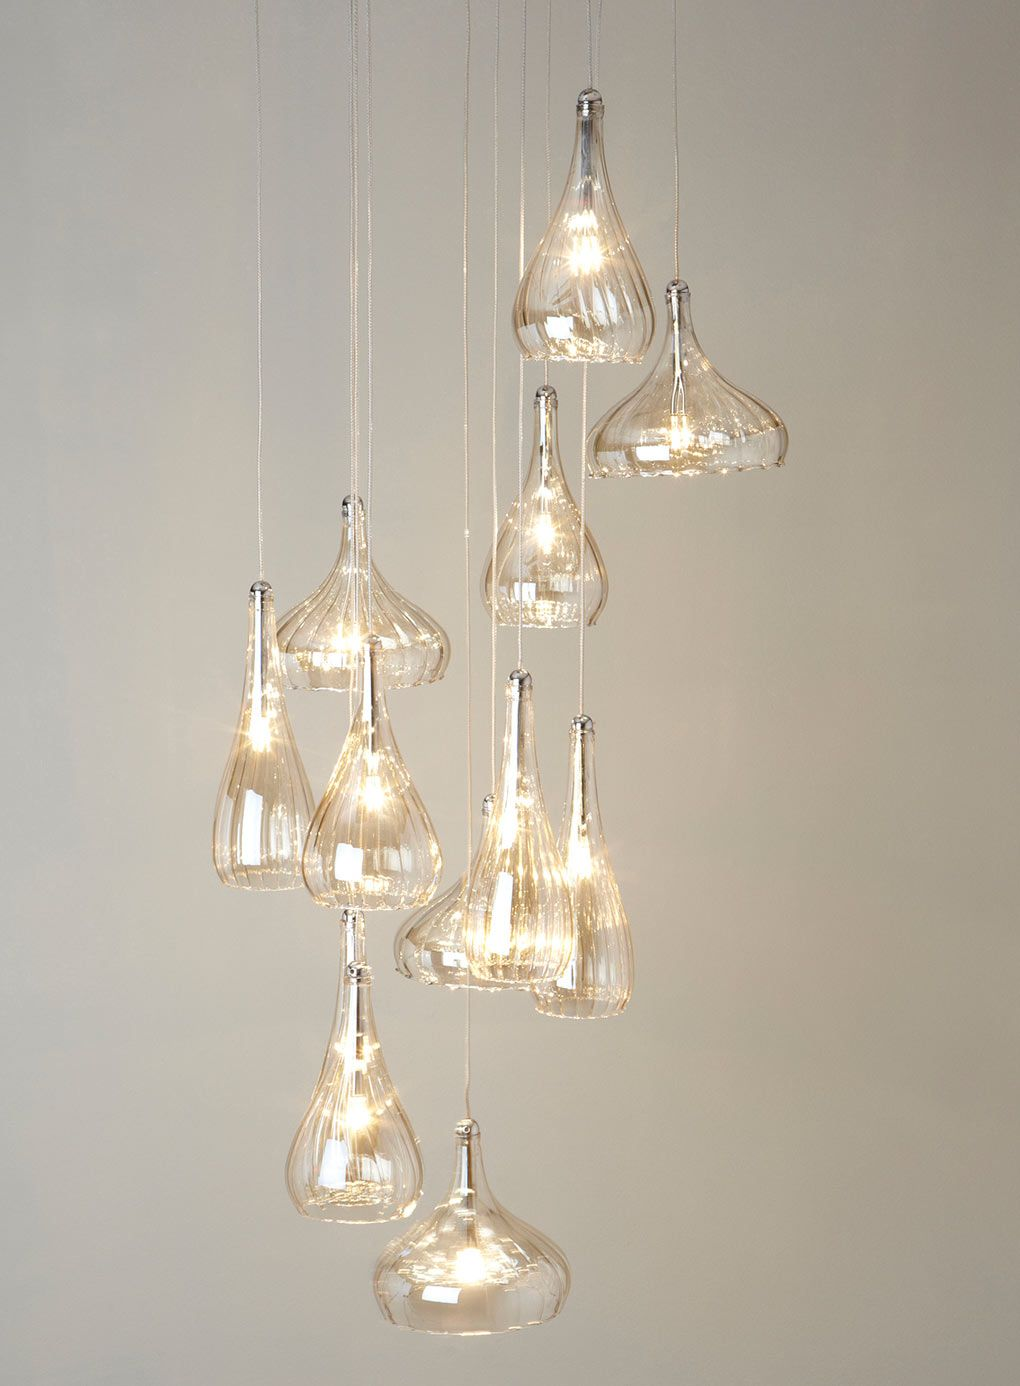 Carrara 12 light ceiling pendant lighting pinterest ceiling carrara 12 light ceiling pendant arubaitofo Image collections